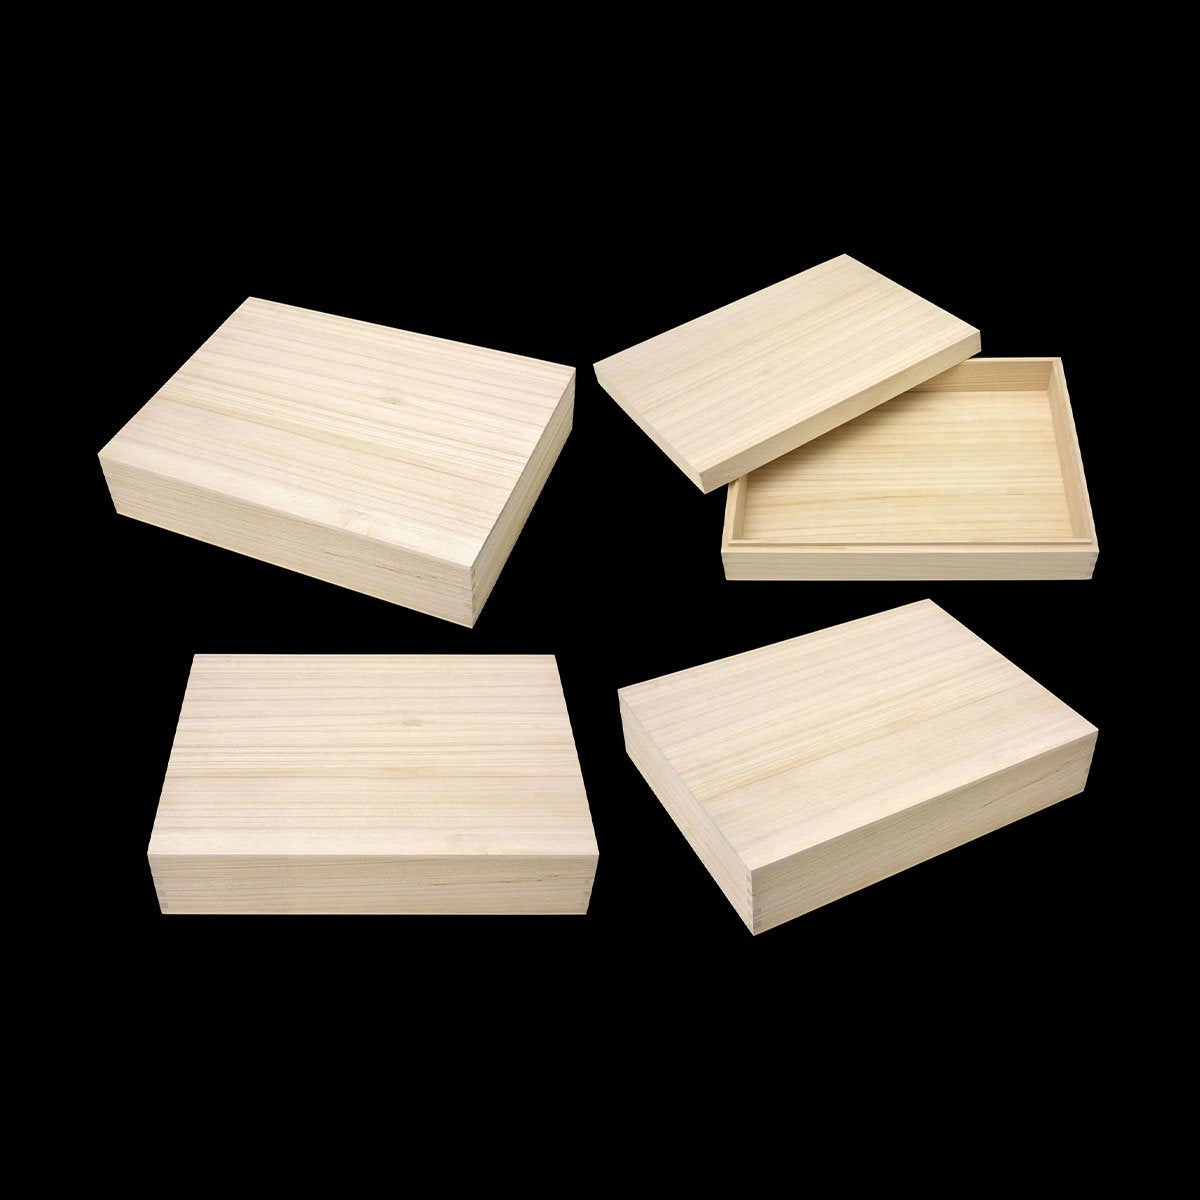 Solid Wood Boards For Furniture And Shelving New Stock 25th Jan Arrival Order Now As They Are Selling Fast!